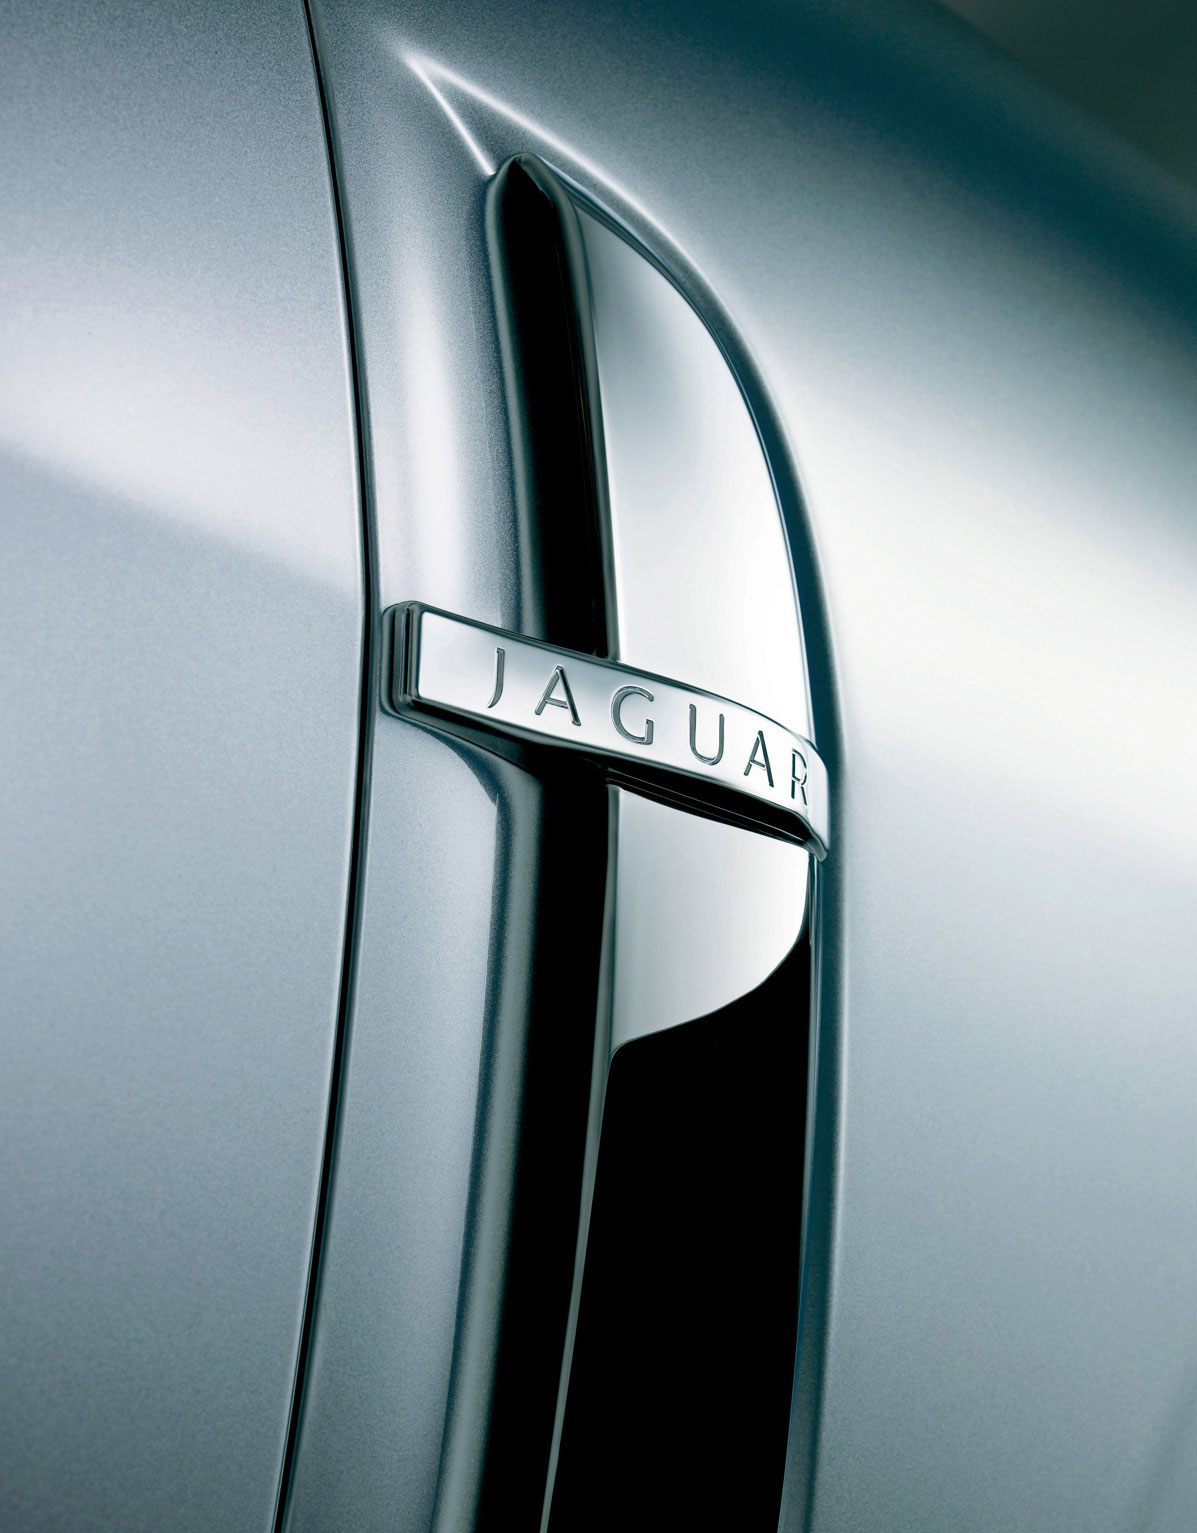 Jaguar Related Emblems